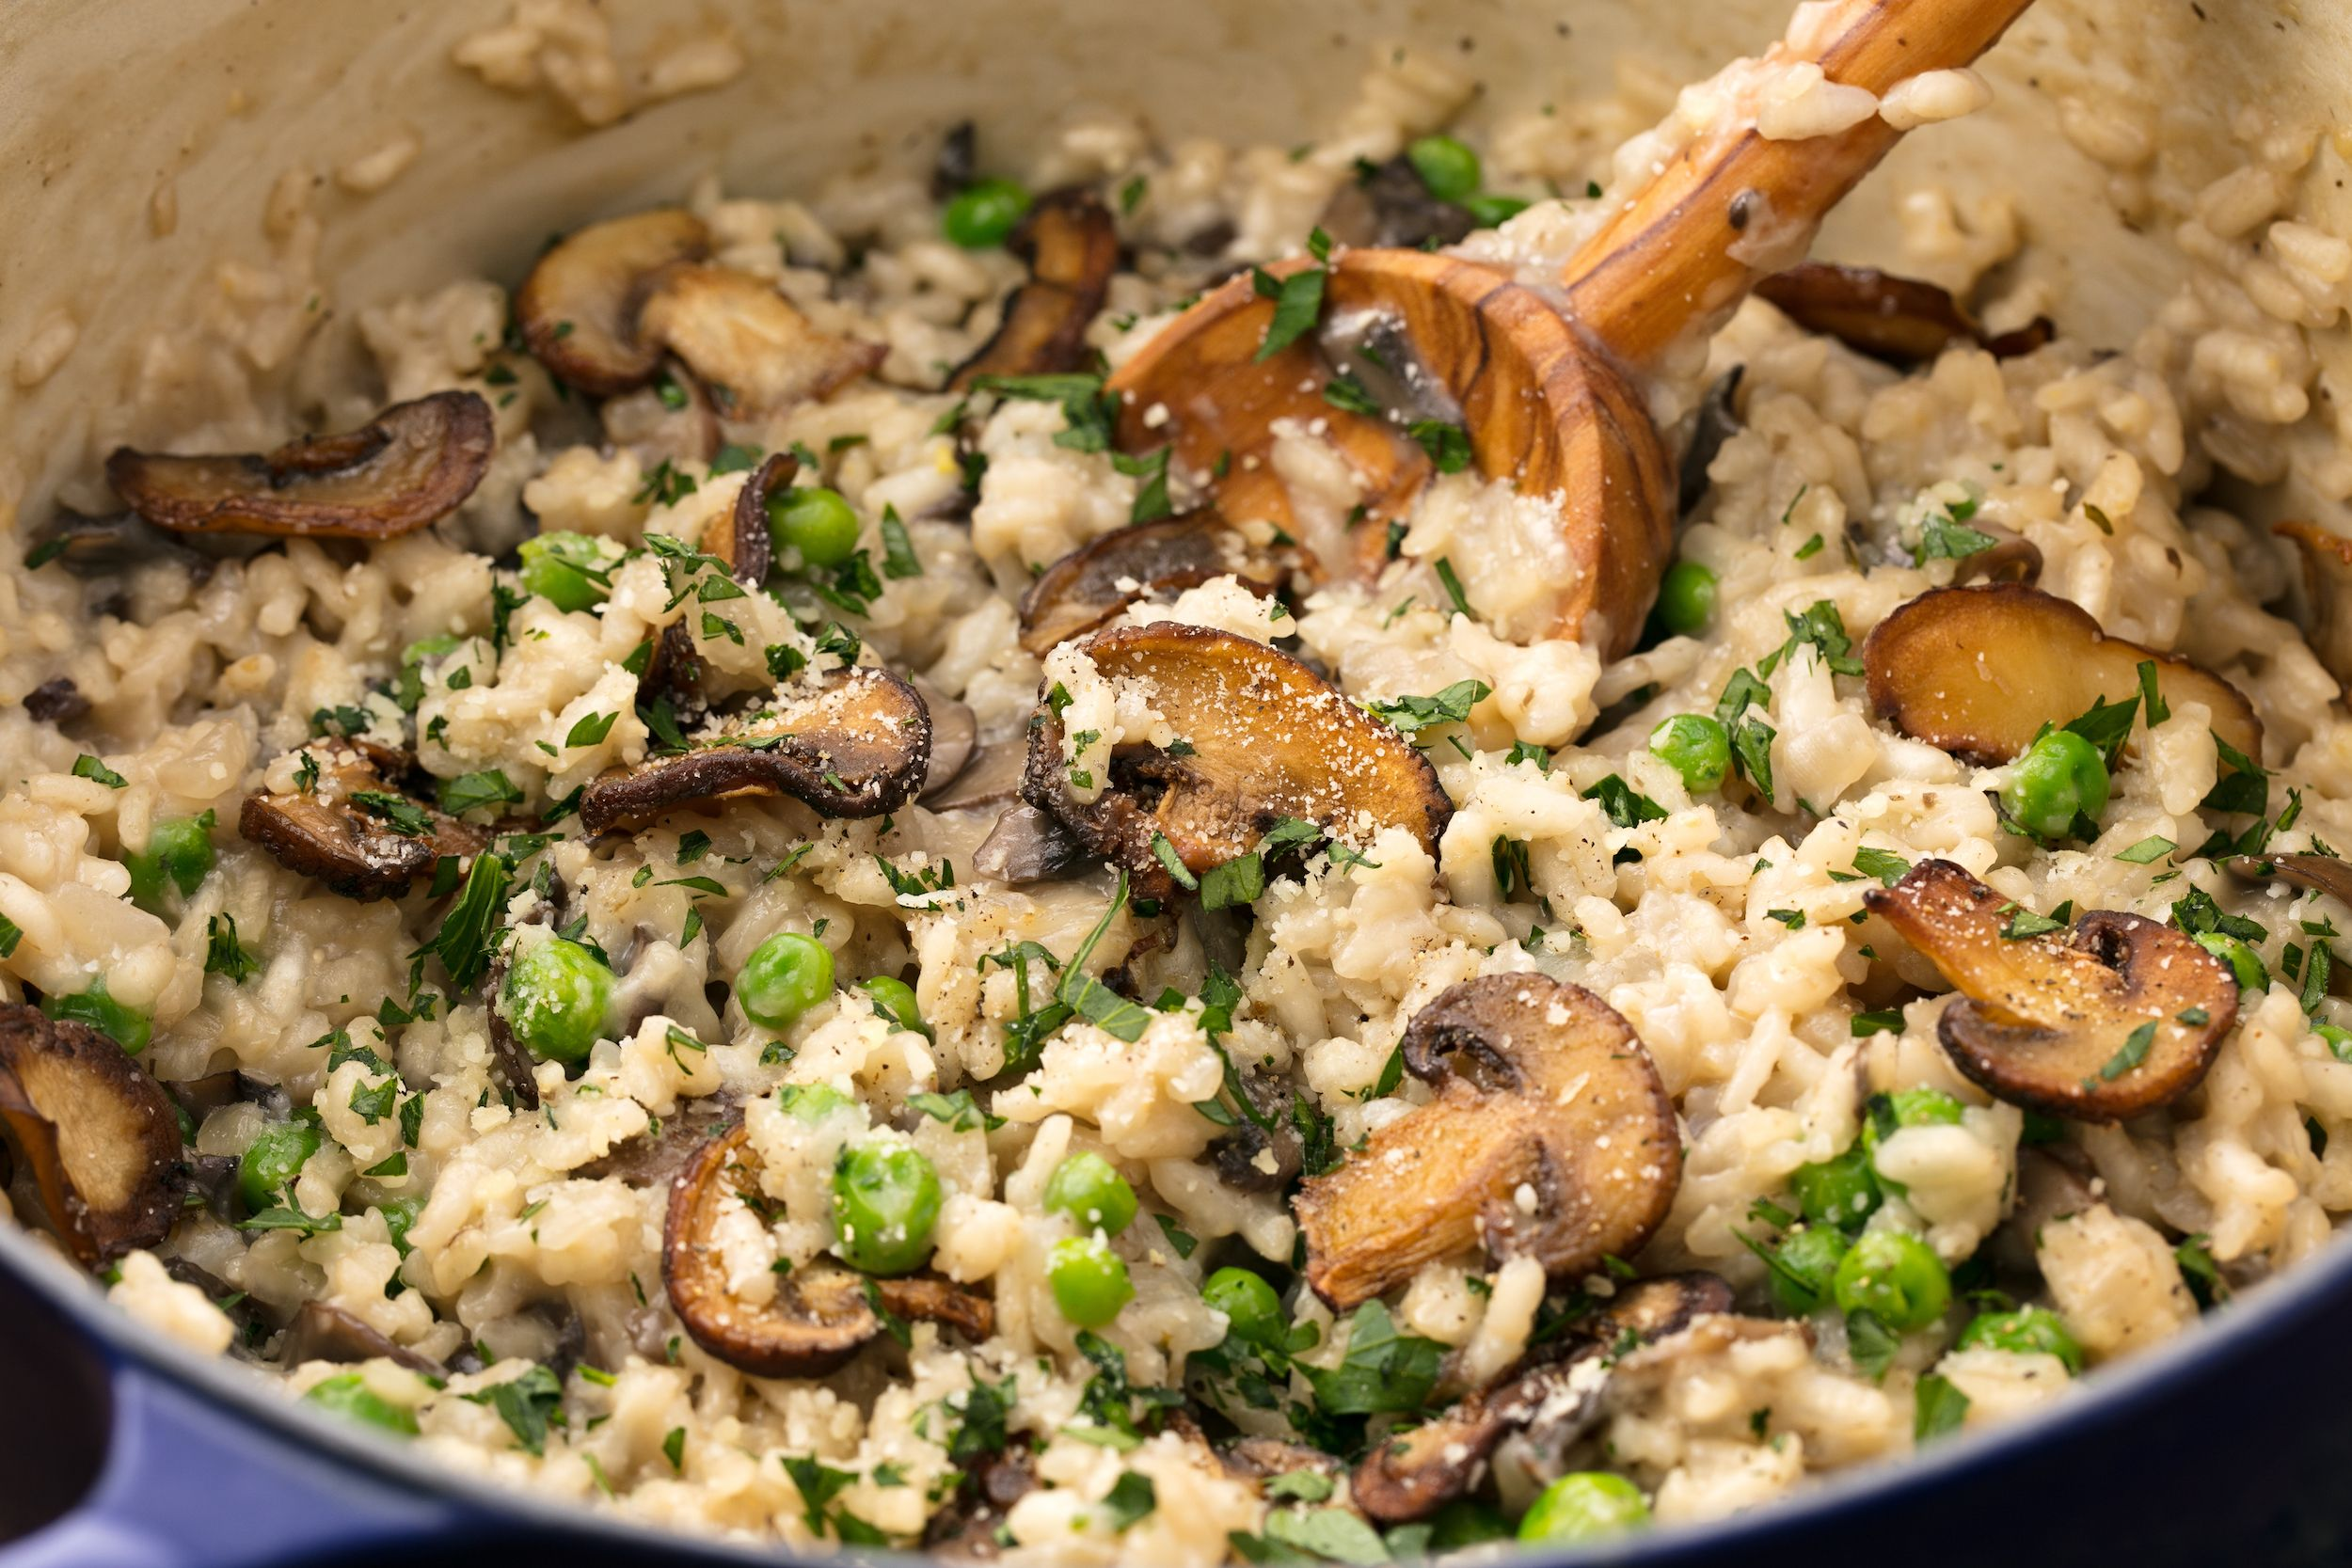 Easy Mushroom Risotto Recipe How To Make Creamy Mushroom Risotto